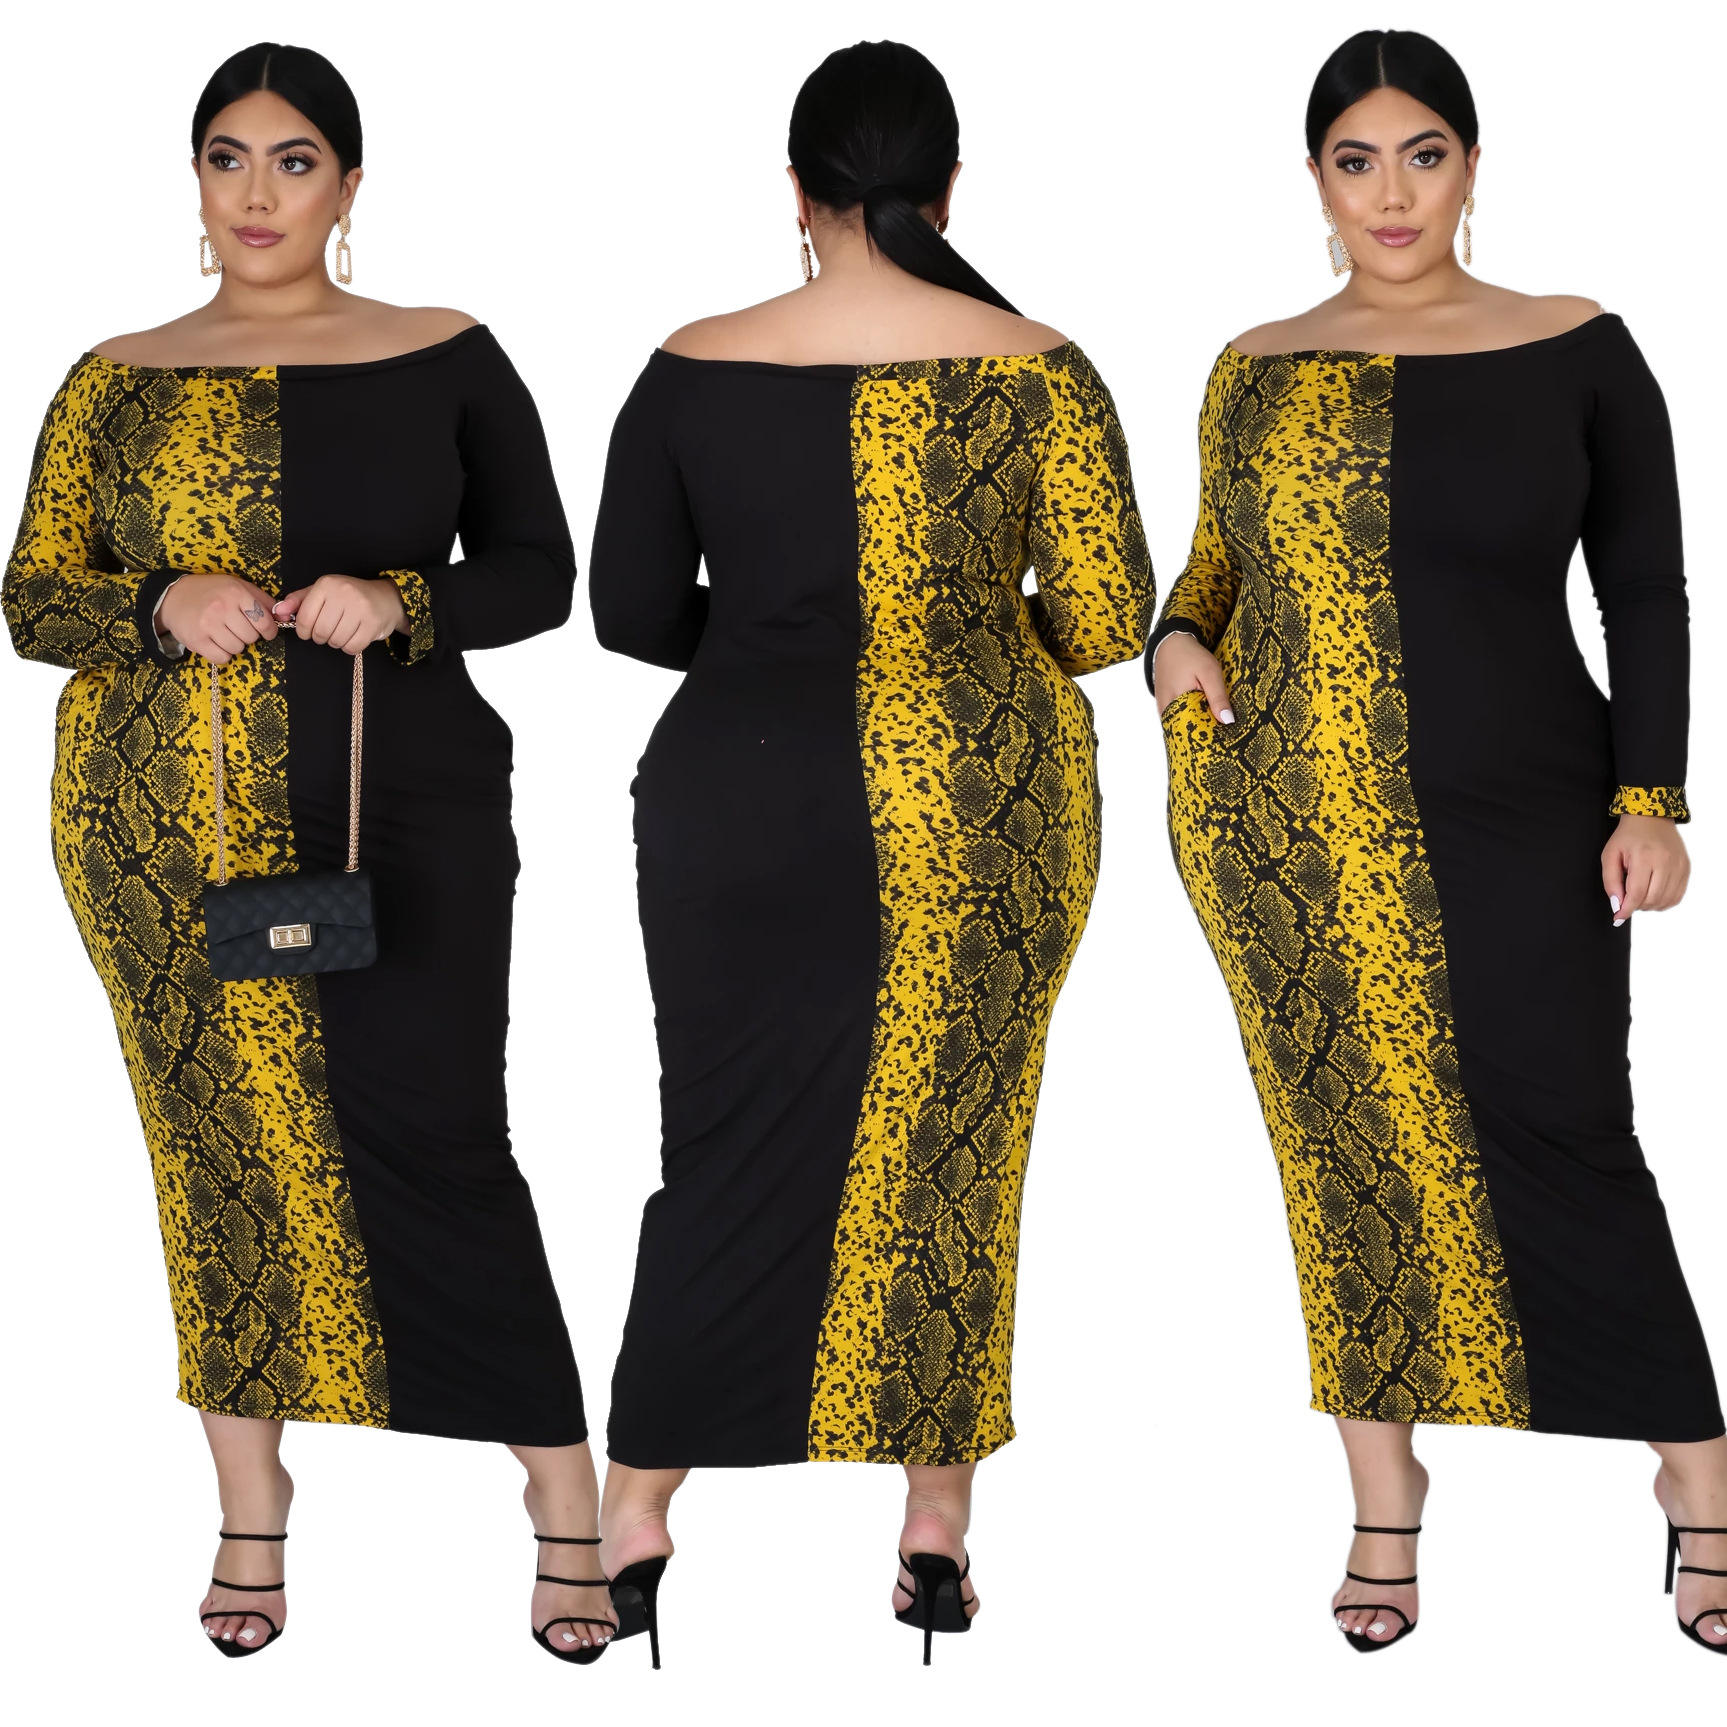 Big size women colorful snake printing dress & plus size africian printing clothing for 2020